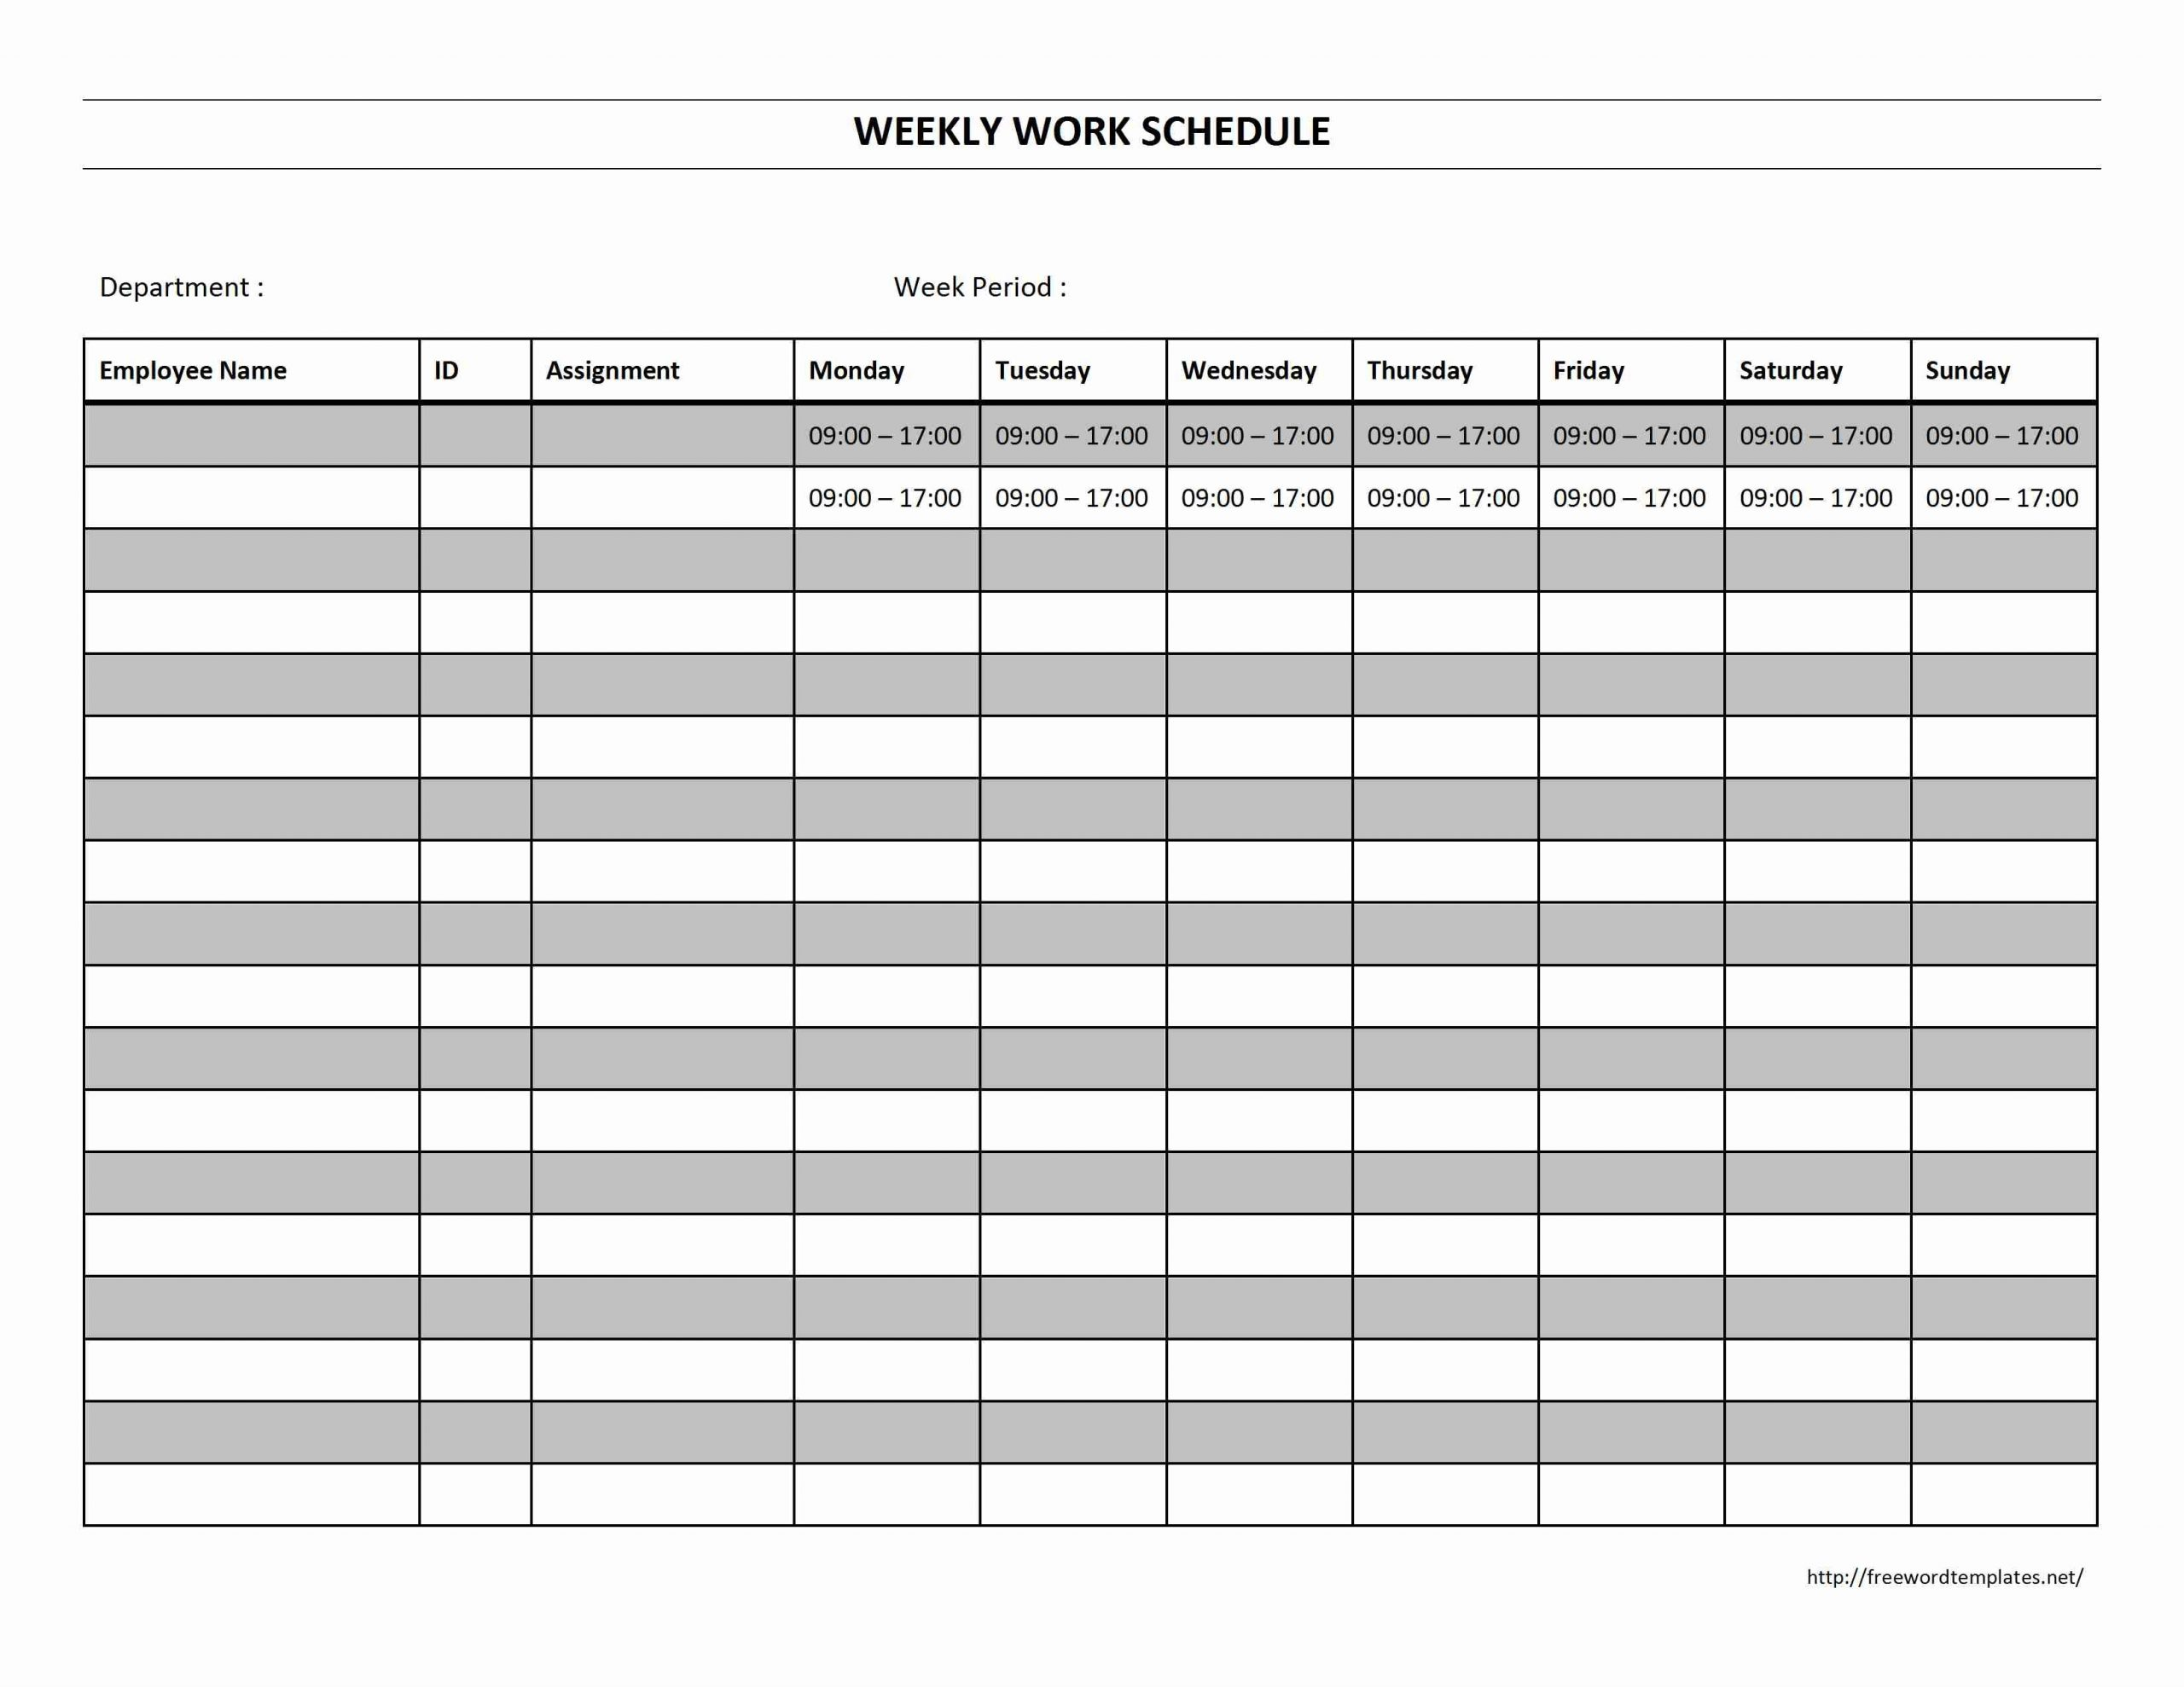 template for a weekly work schedule  Weekly Work Schedule   Freewordtemplates